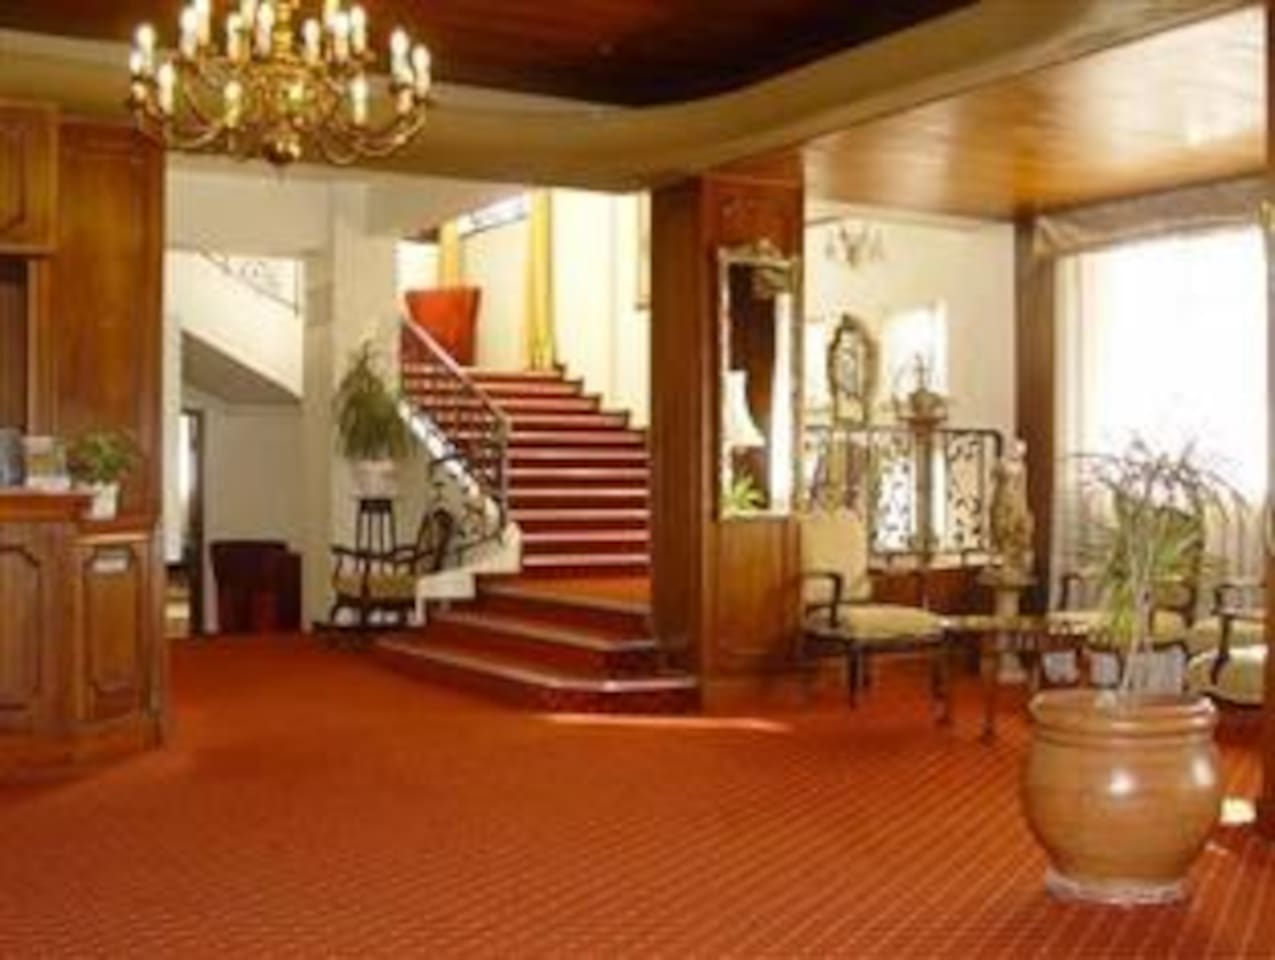 The foyer of the Parkview Apartment Block.